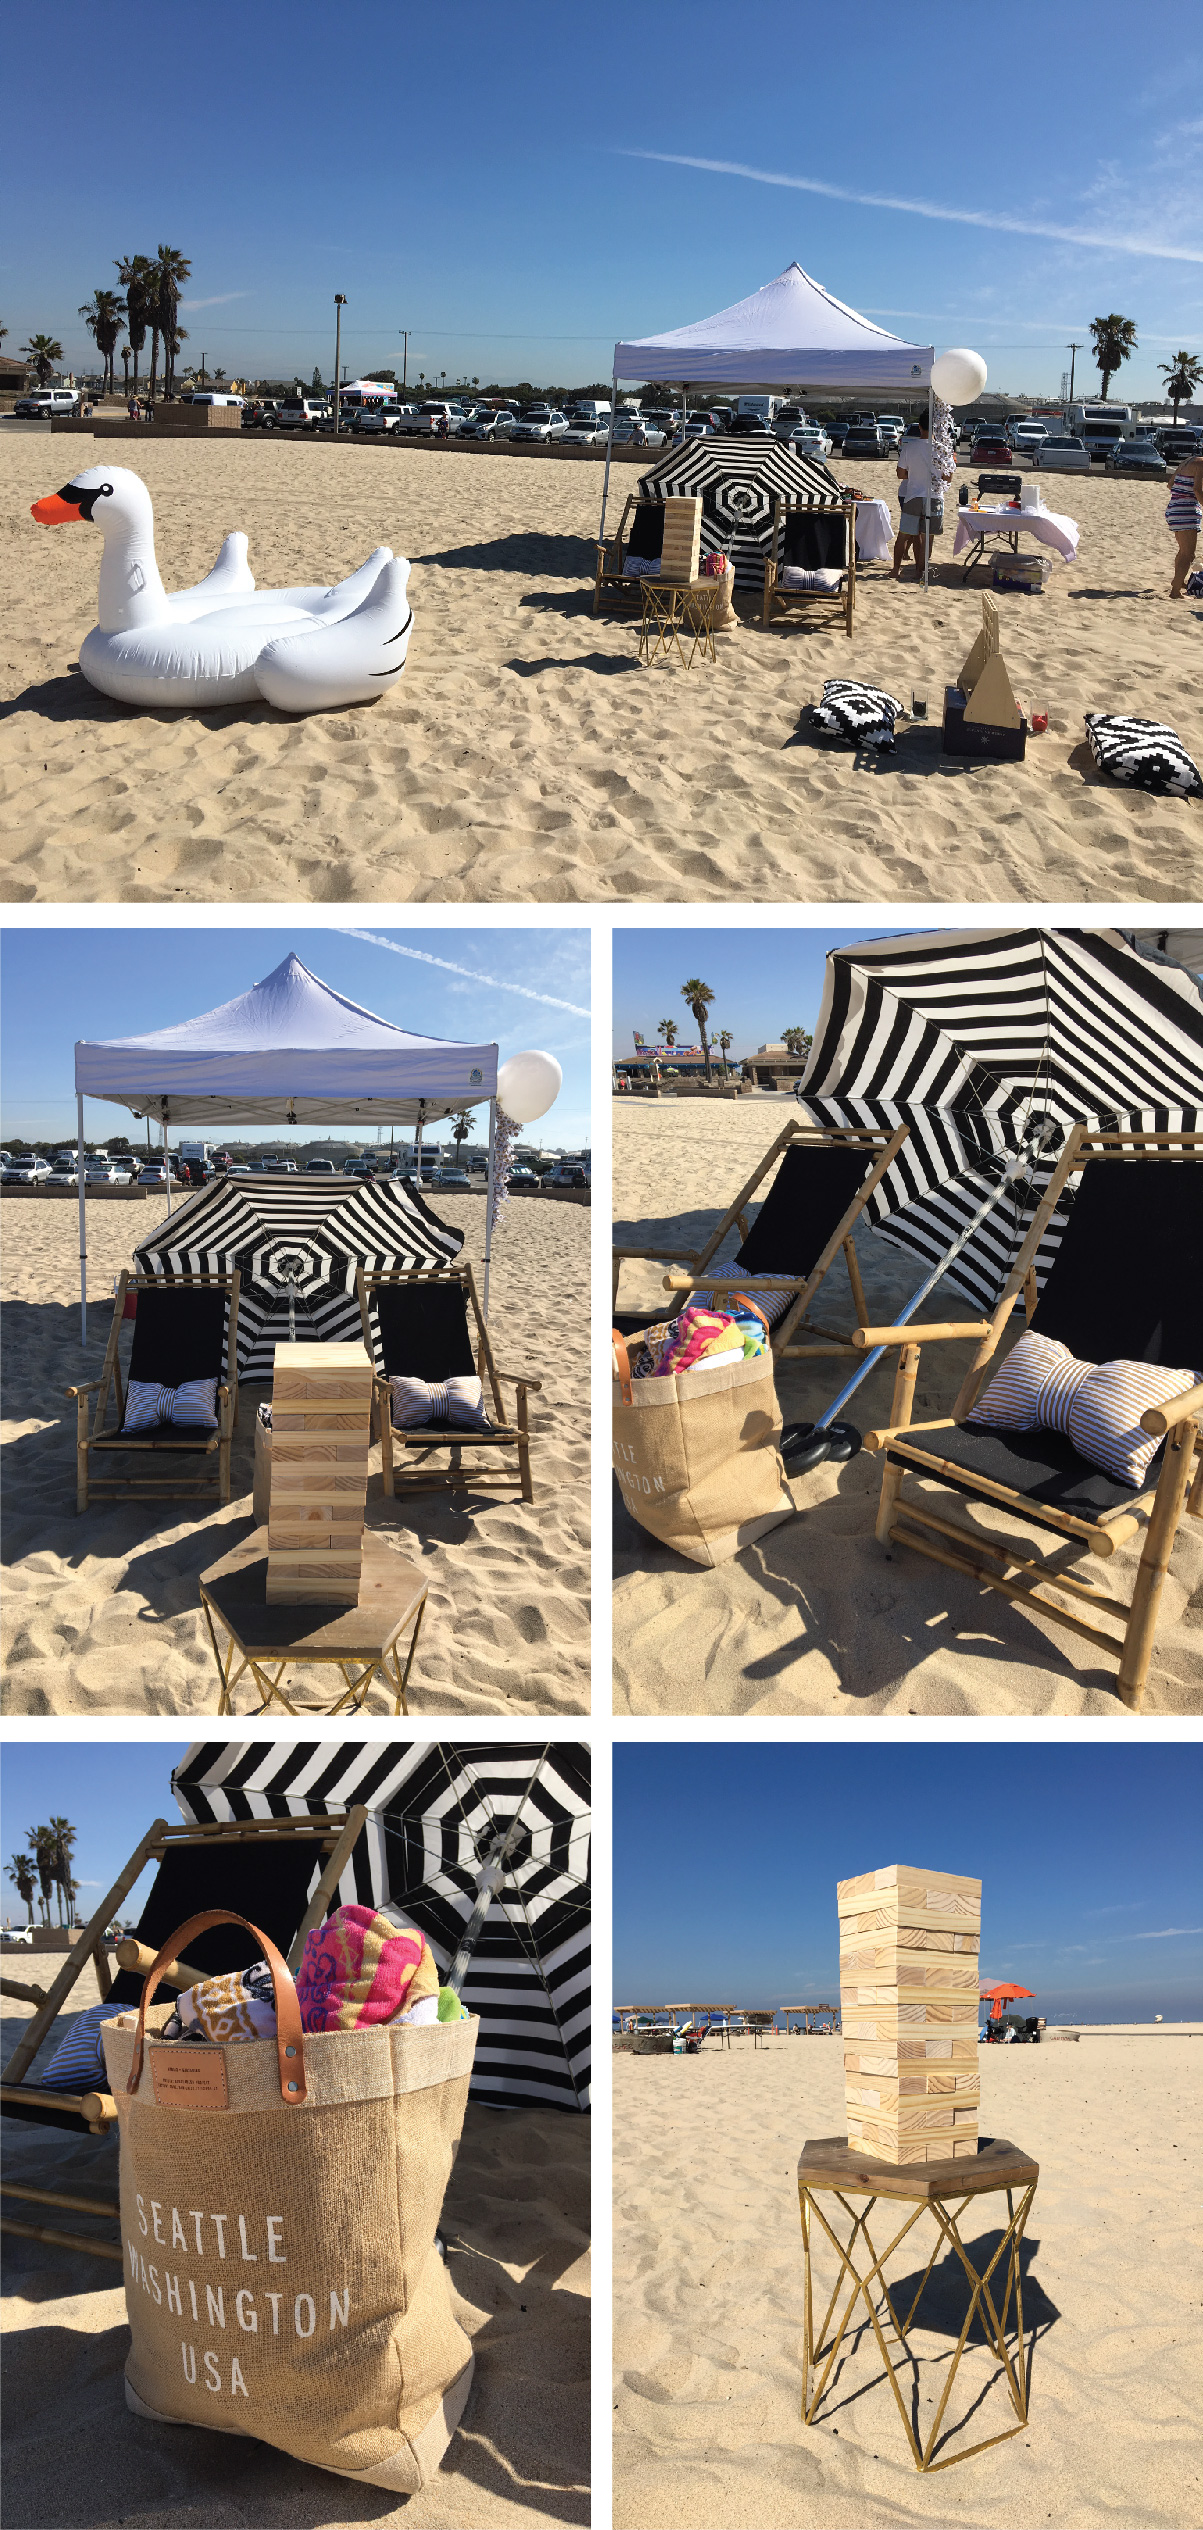 2.beach party setup